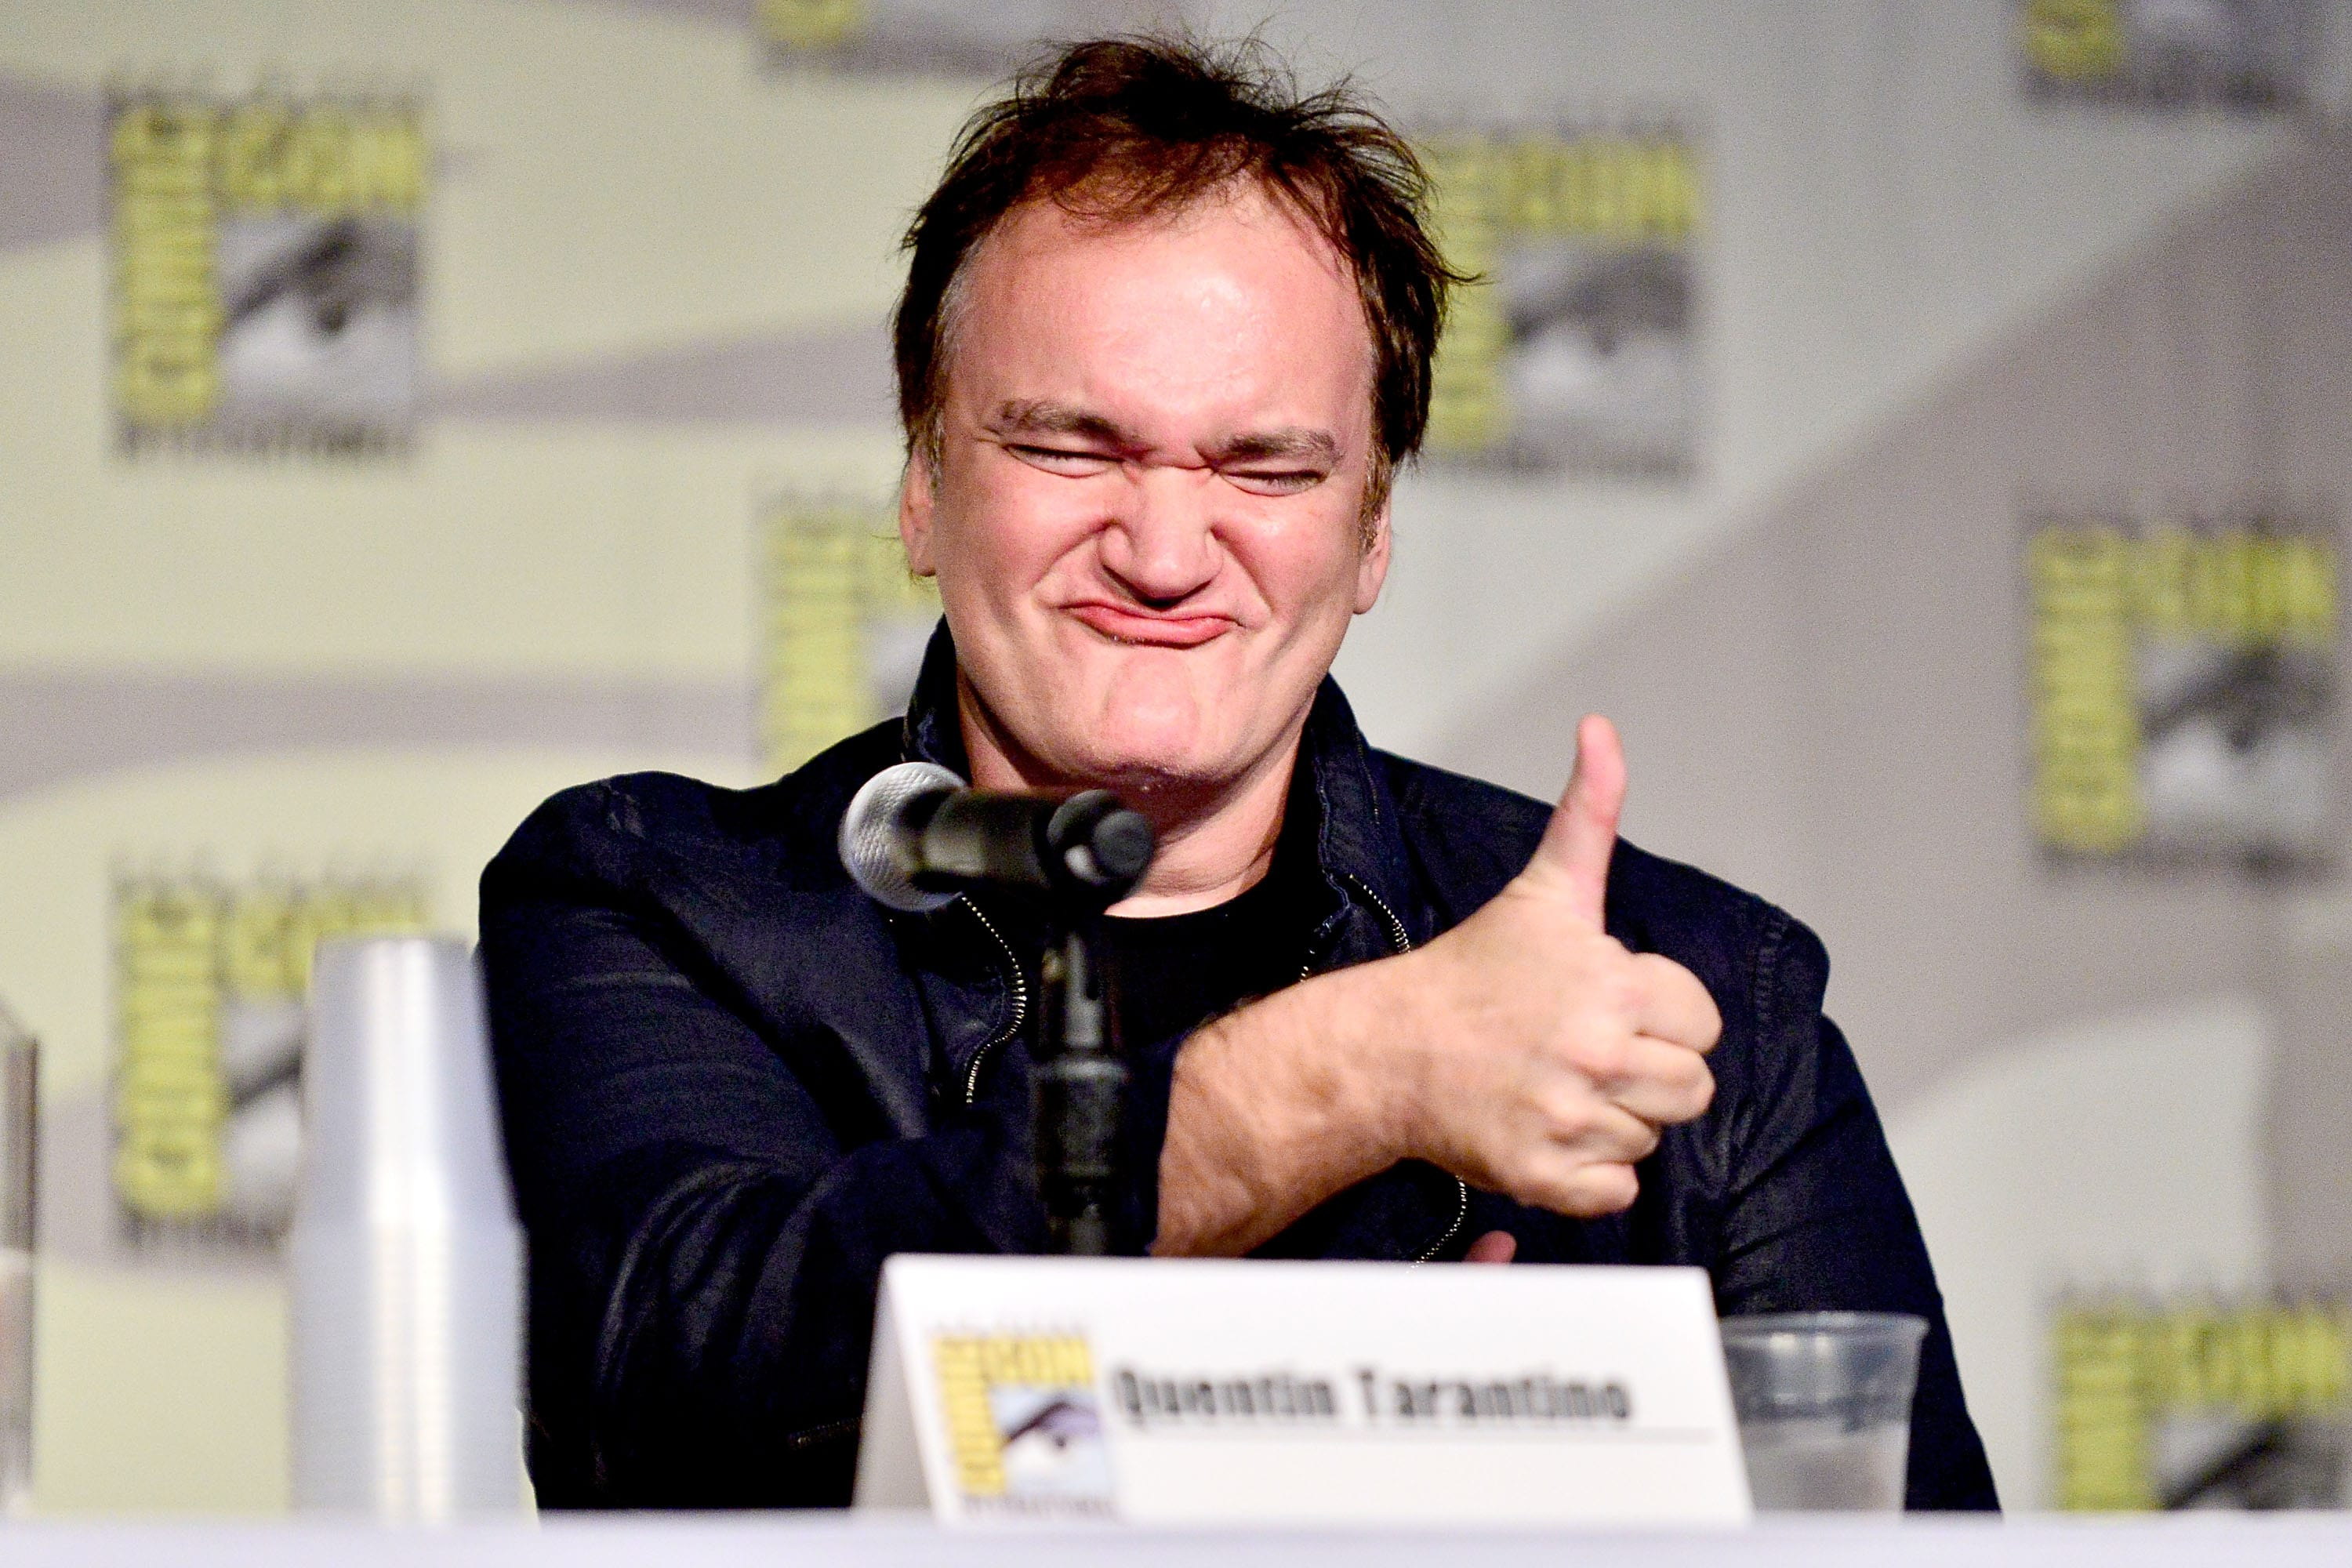 Quentin Tarantino Widescreen for desktop